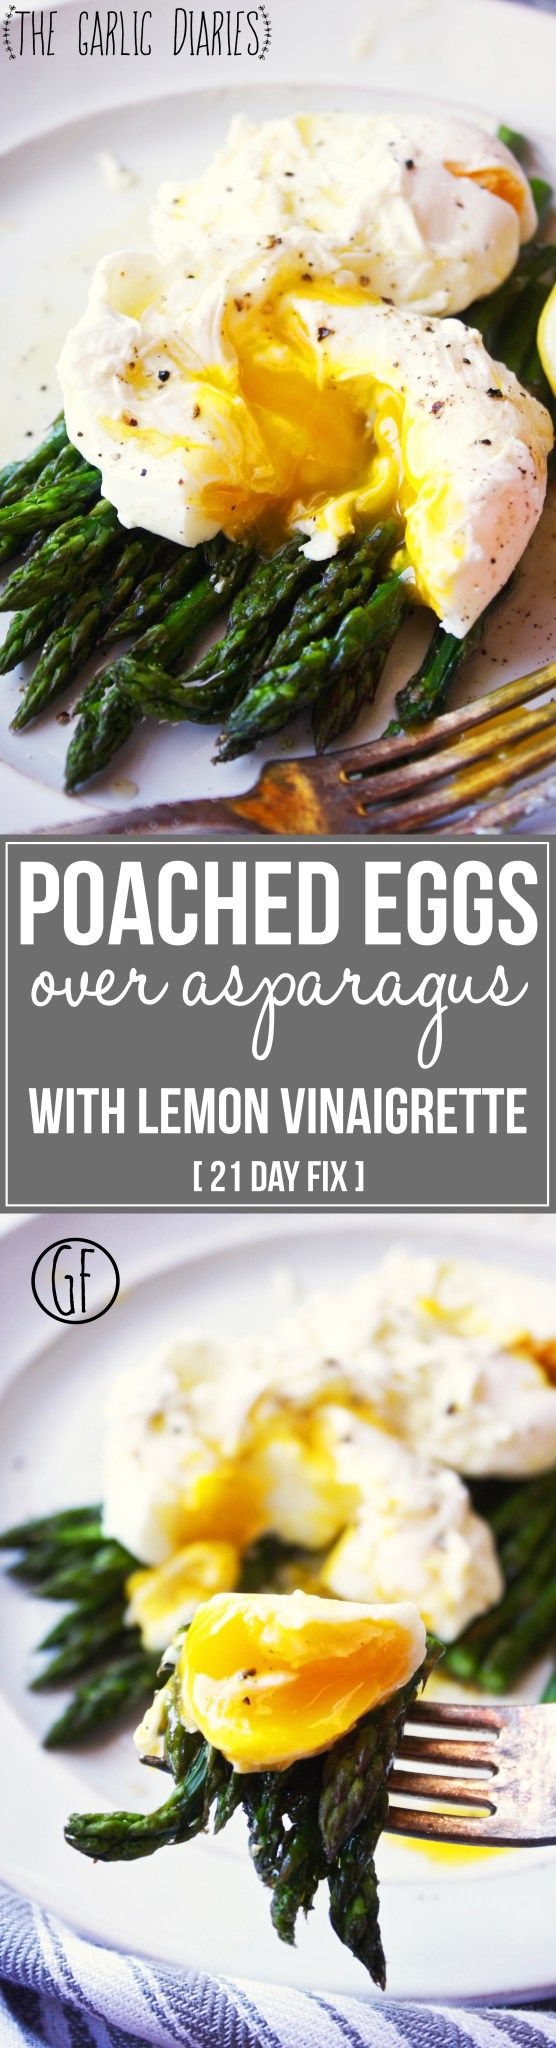 Poached Eggs over Roasted Asparagus with Lemon Vinaigrette [21 Day Fix] – The perfect combination of flavors and textures! Rich